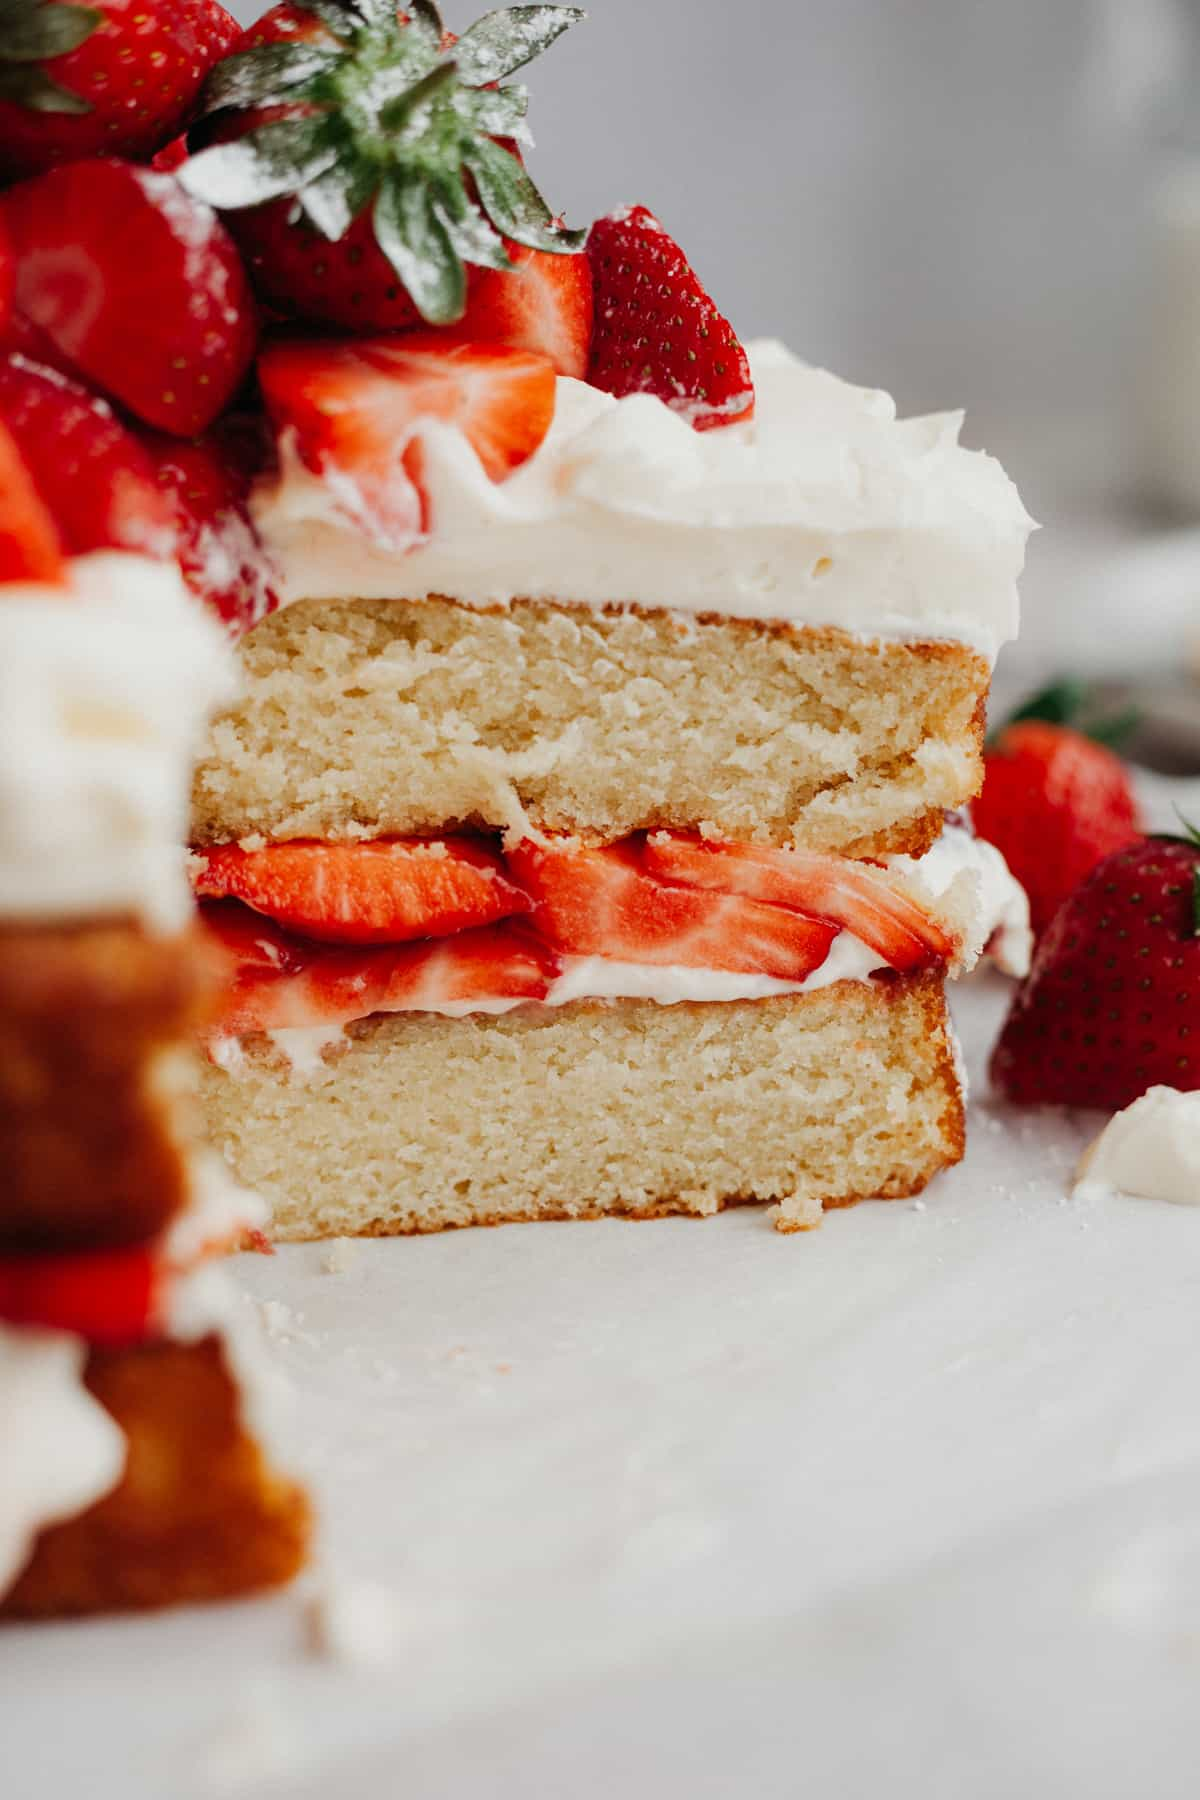 A close up of a strawberry filled cake that has had several slices taken out